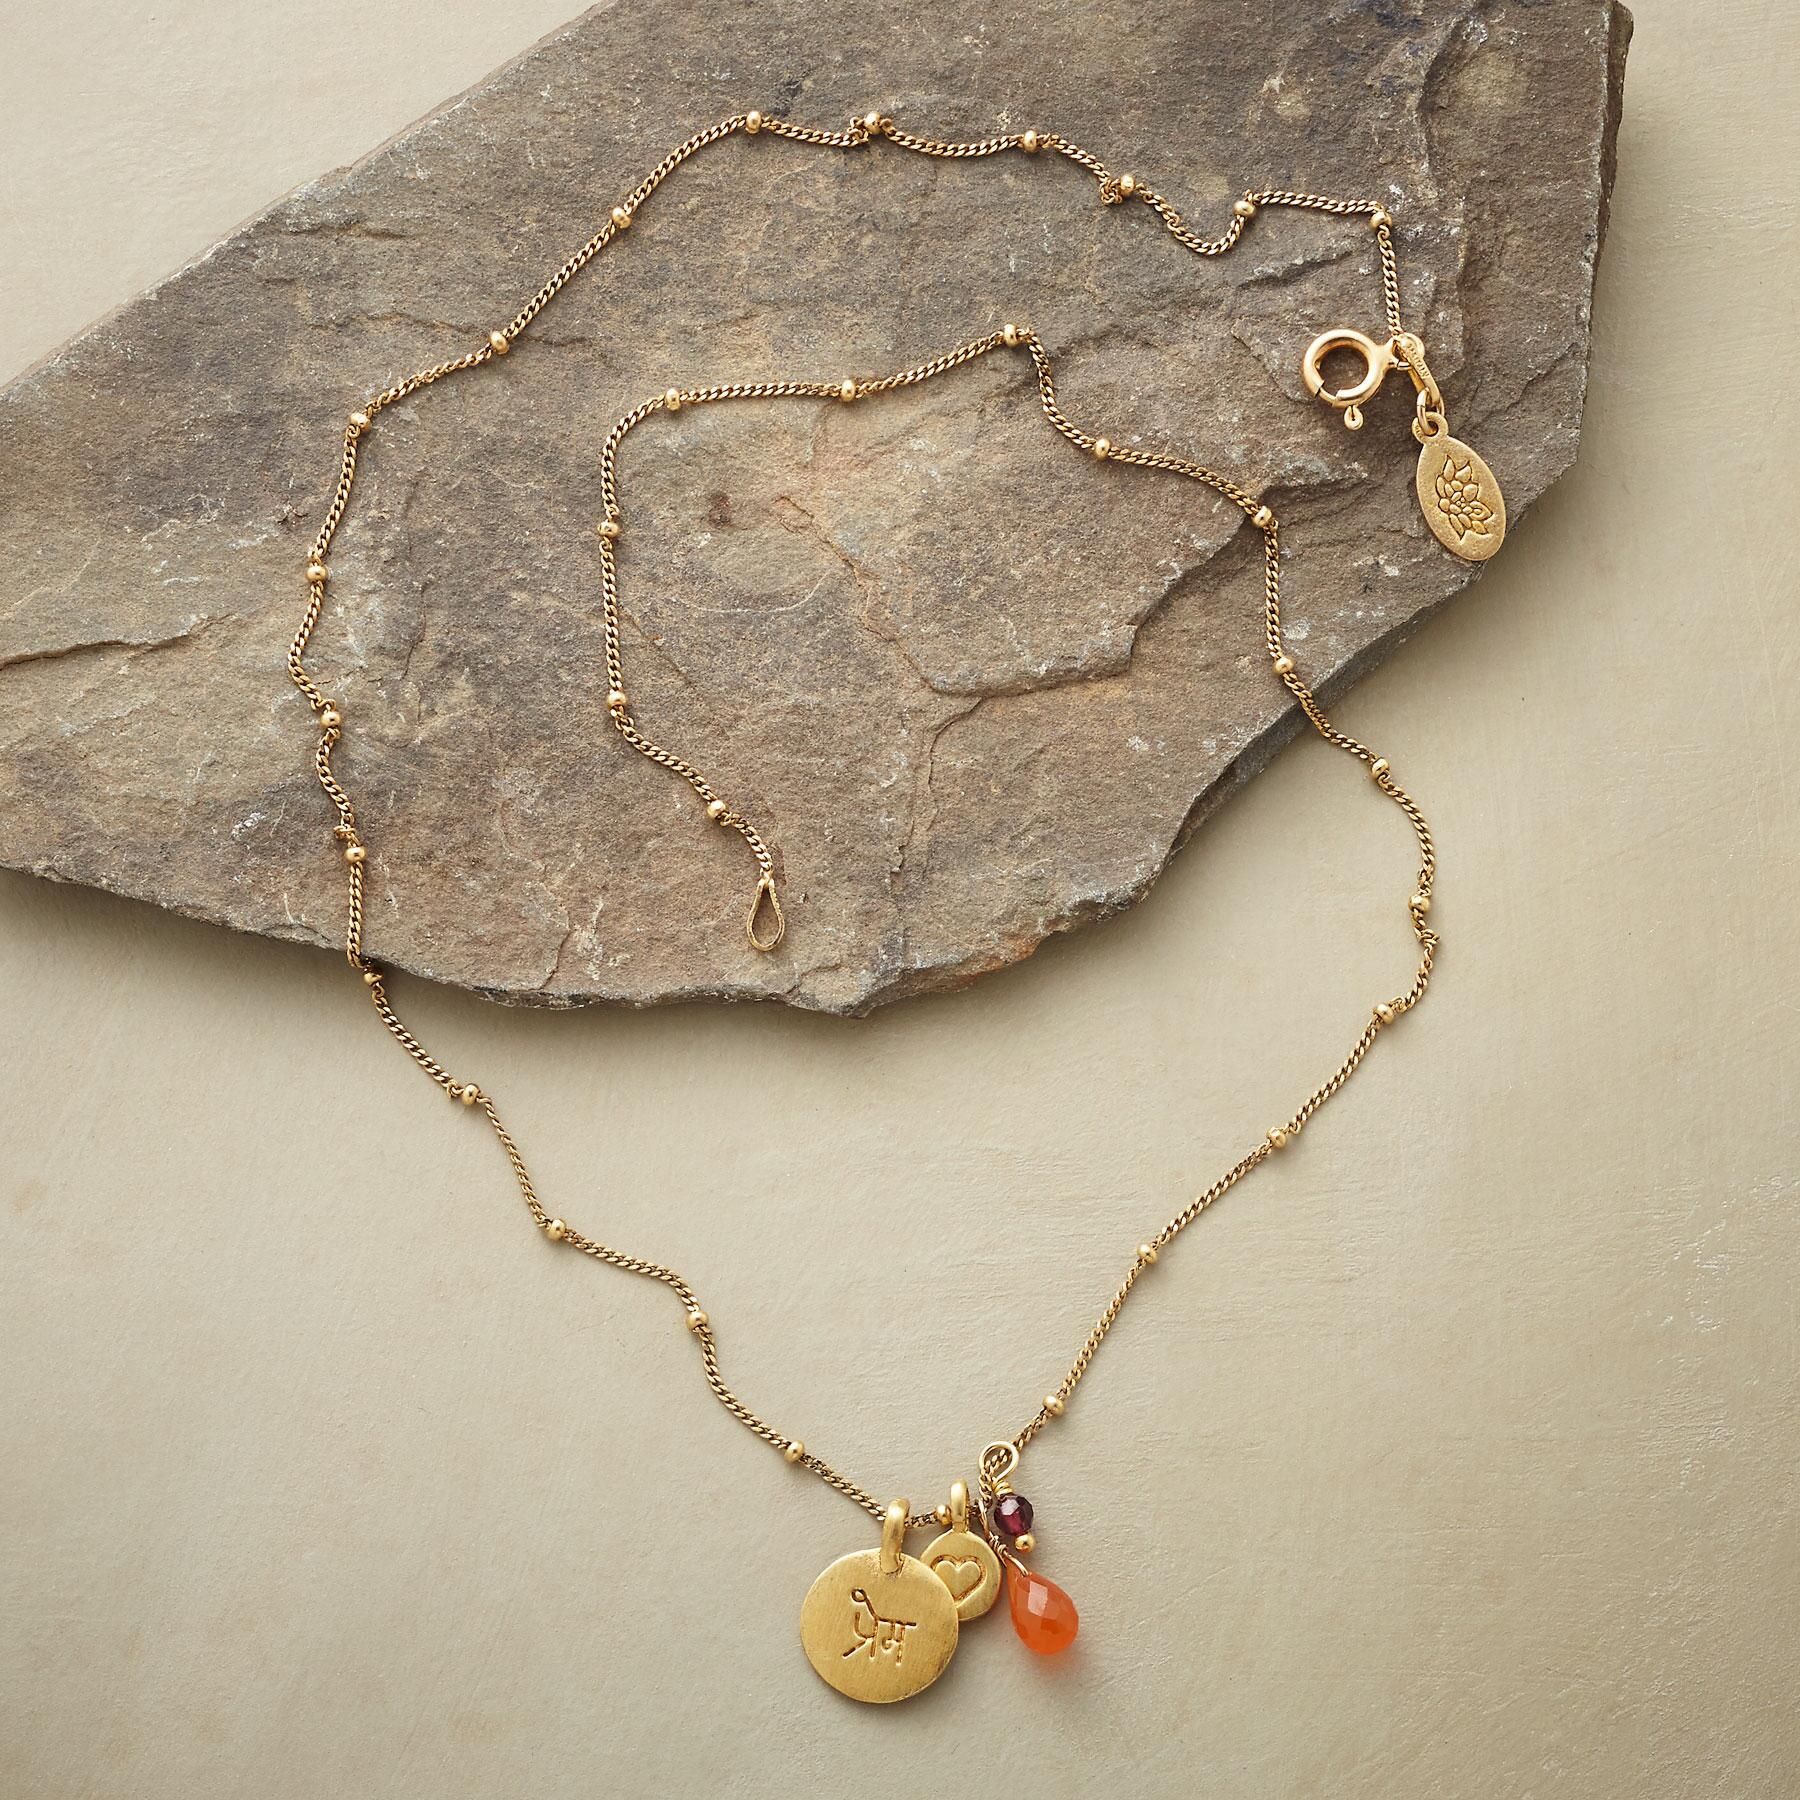 LOVE A LITTLE NECKLACE: View 2